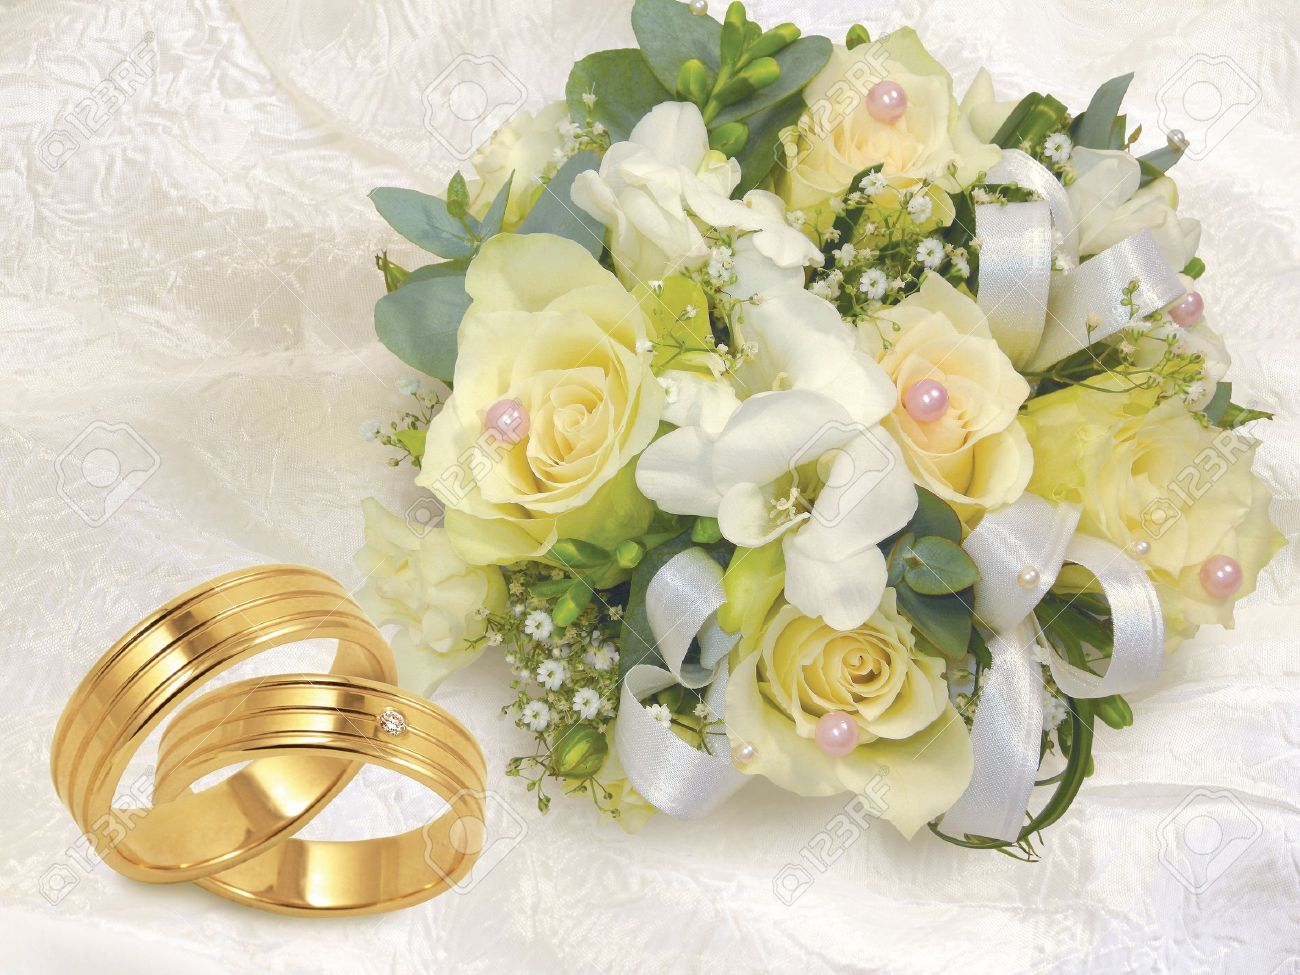 roses image rings pair photography royalty close white in inside up flowers of photo wedding stock bouquet beautiful free